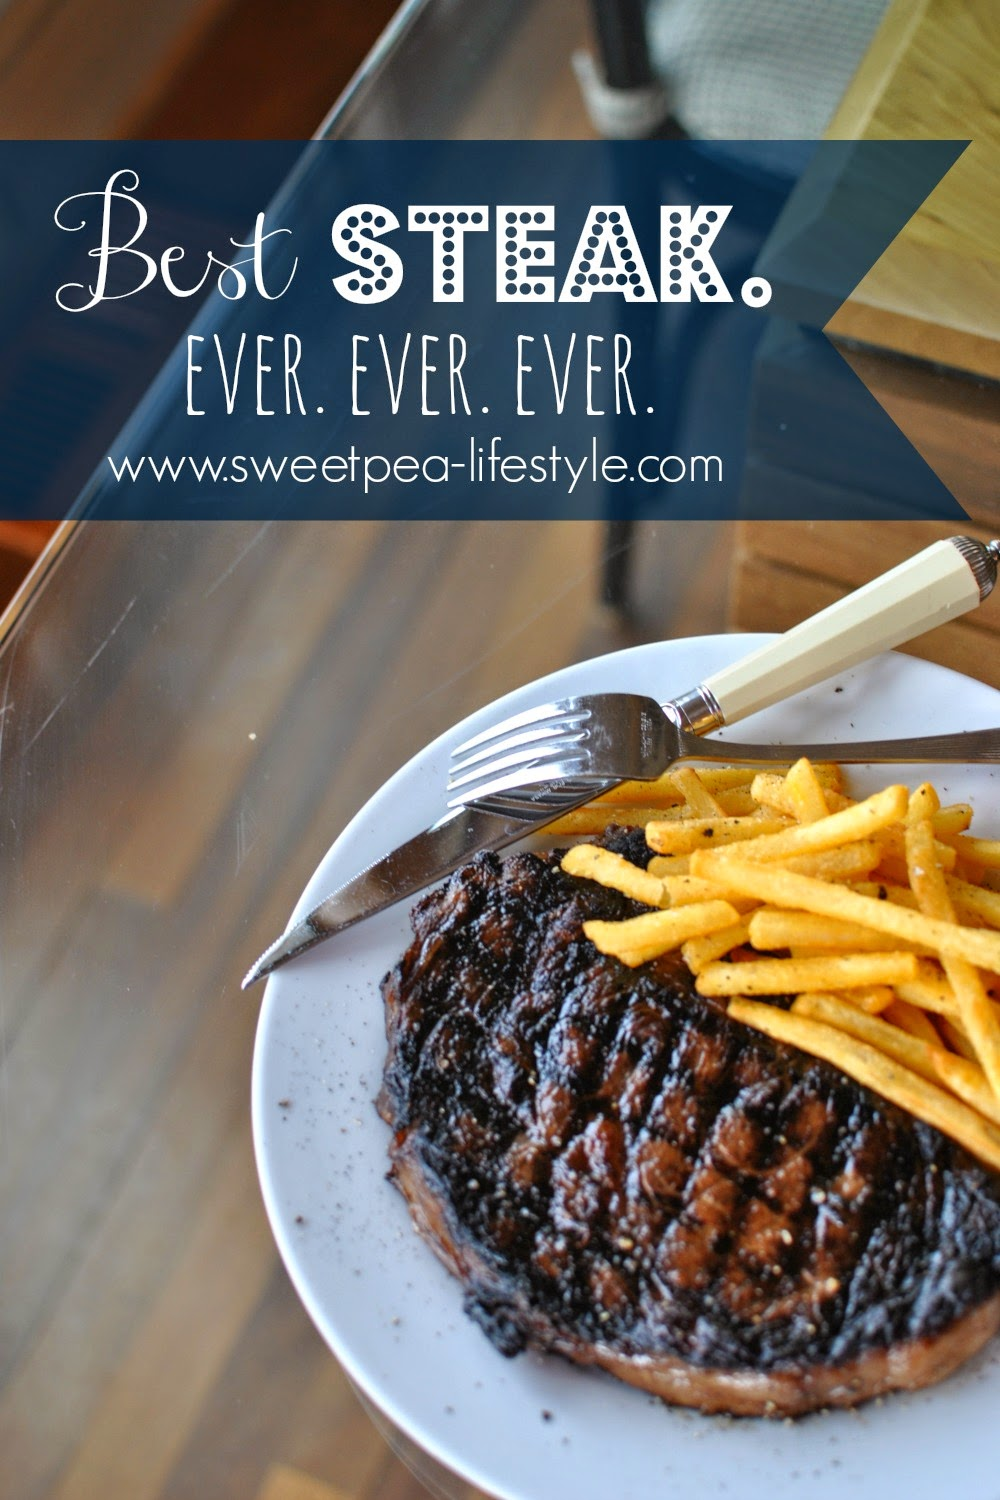 The BEST Steak, Ever.